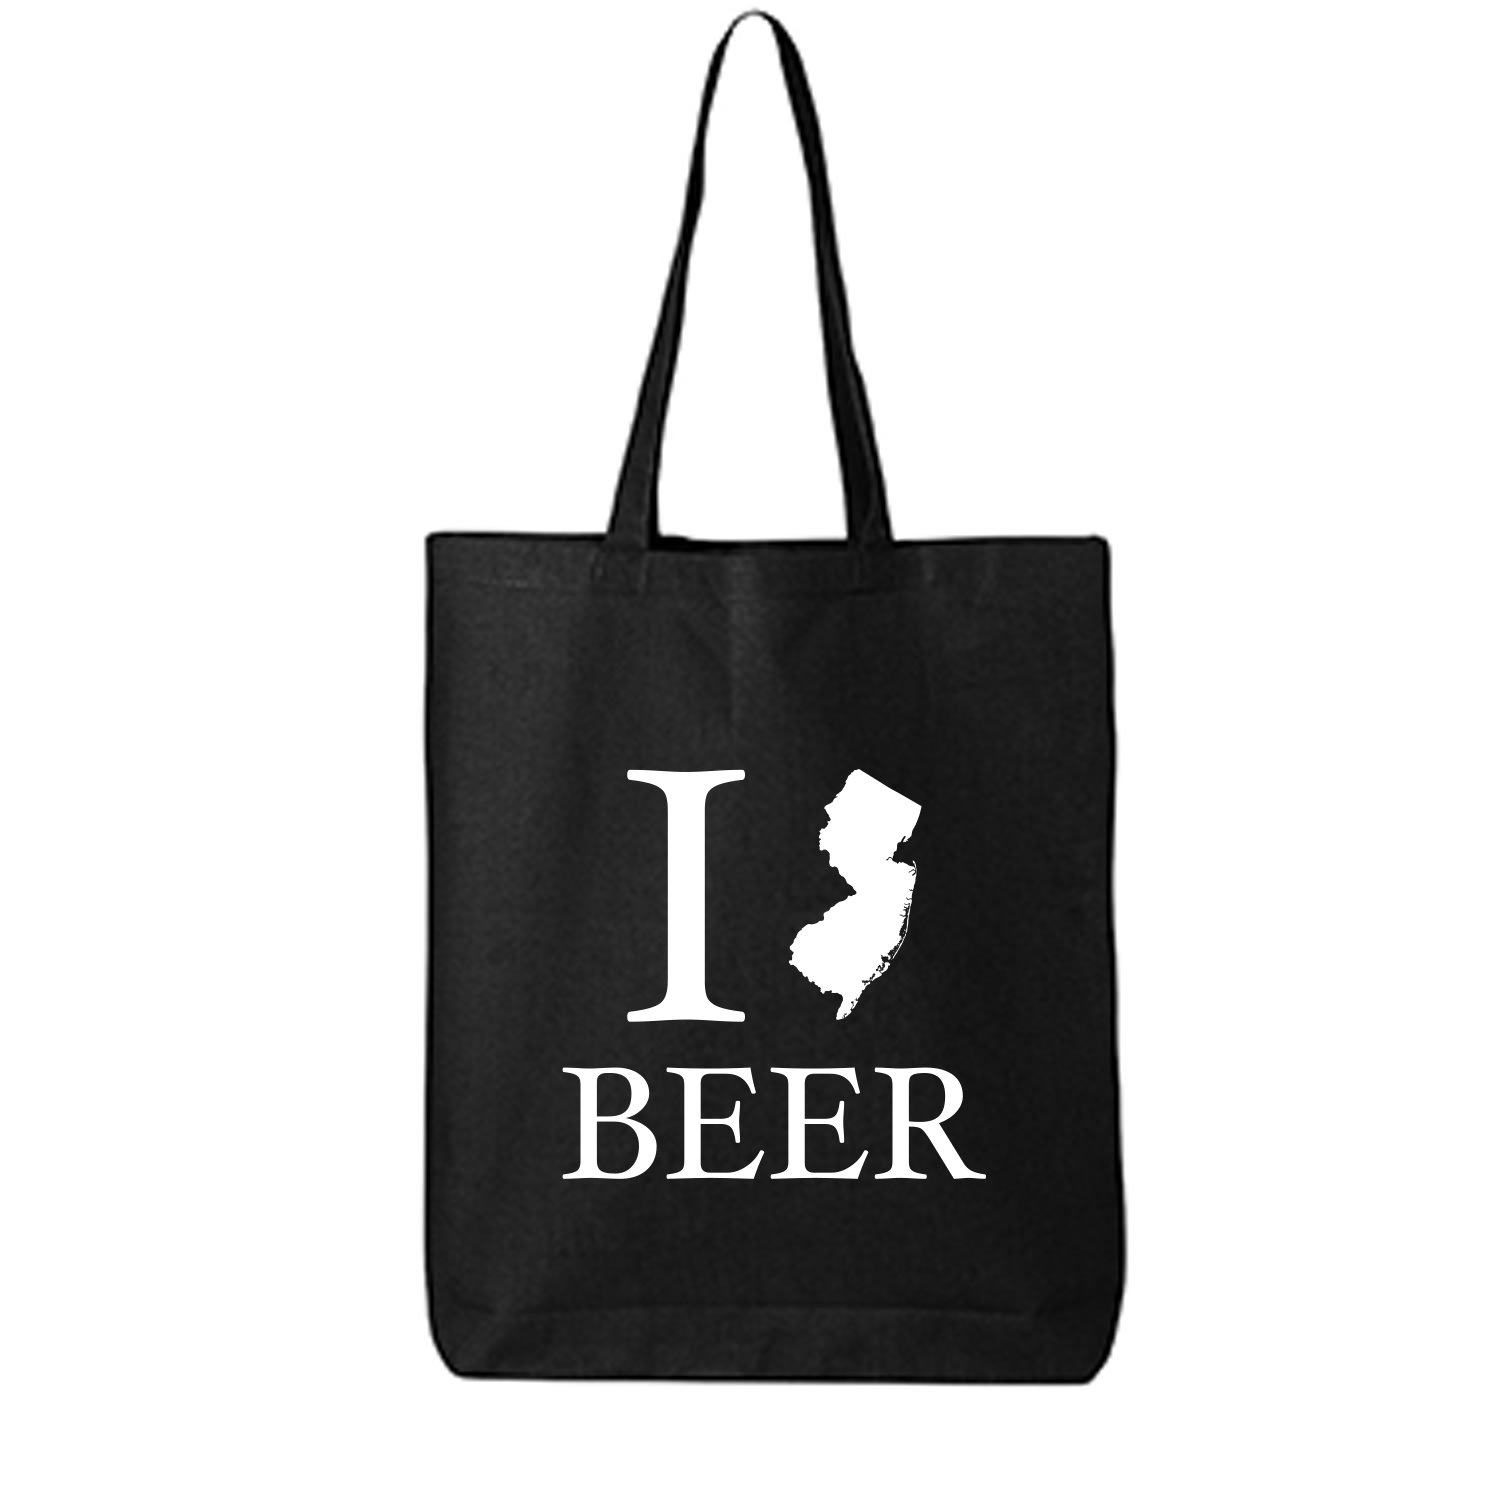 I Love New Jersey Beer Cotton Canvas Tote Bag in Black - One Size